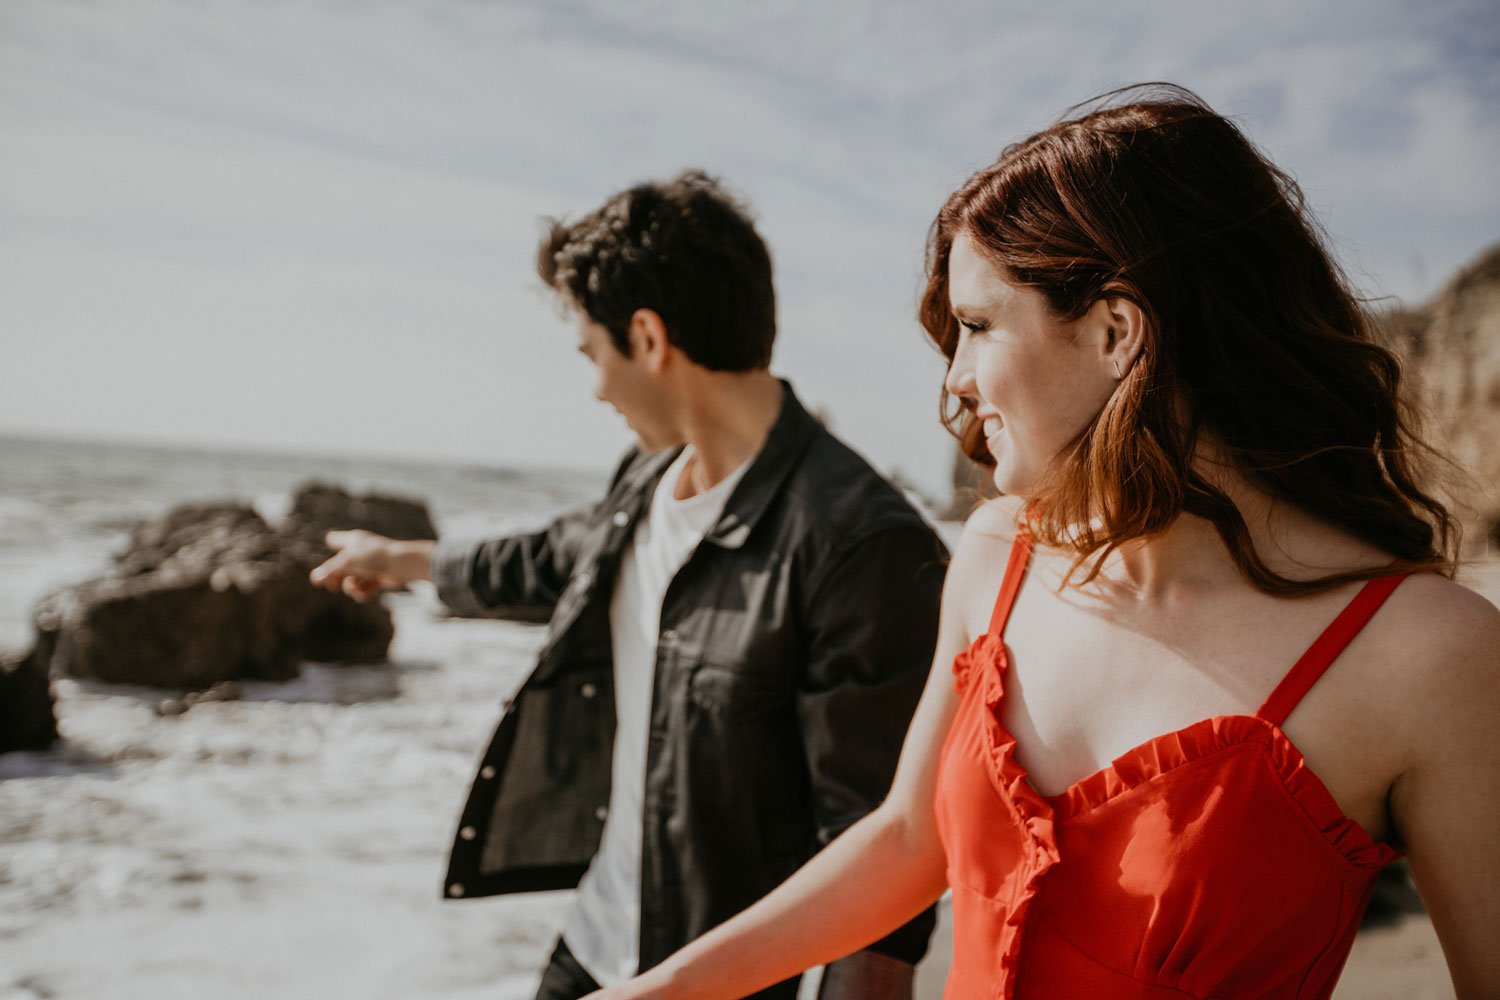 Echosmith Sydney Sierota in red dress and Allstar Weekend Cameron Quiseng engagement shoot on Malibu beach